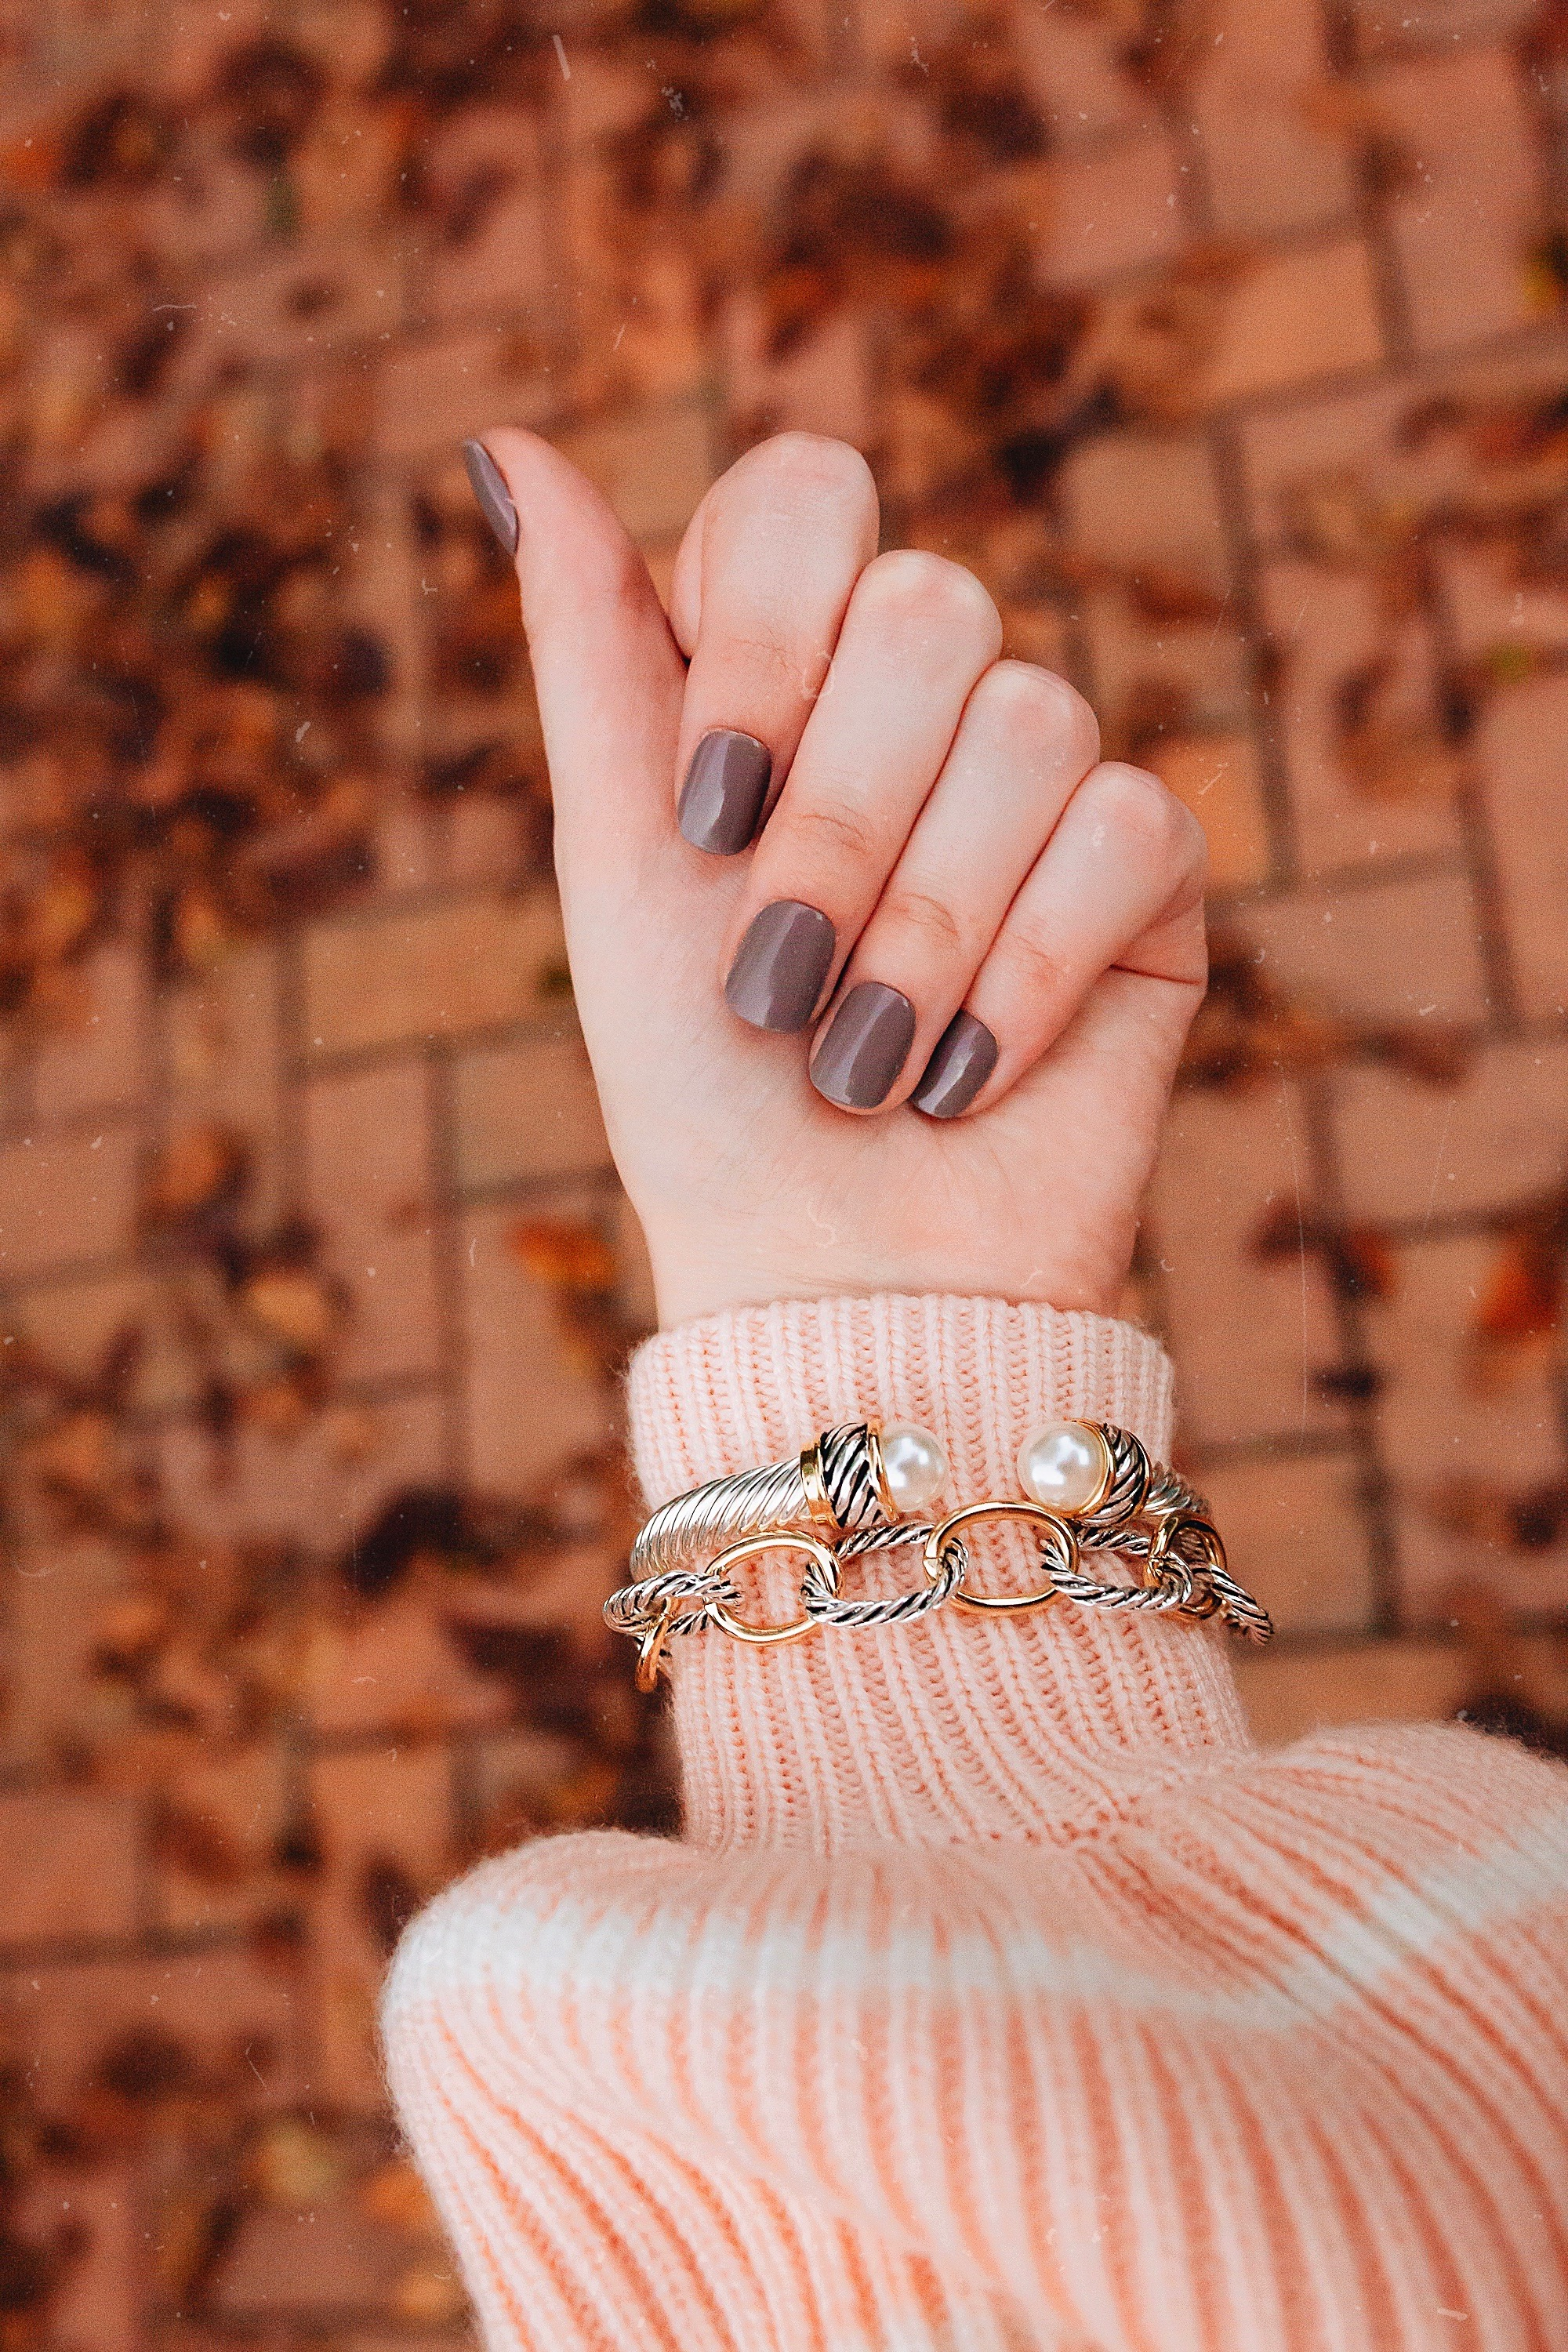 Designer Jewelry Alternatives by North Carolina fashion and lifestyle blogger Jessica Linn. Wearing David Yurman jewelry alternatives.